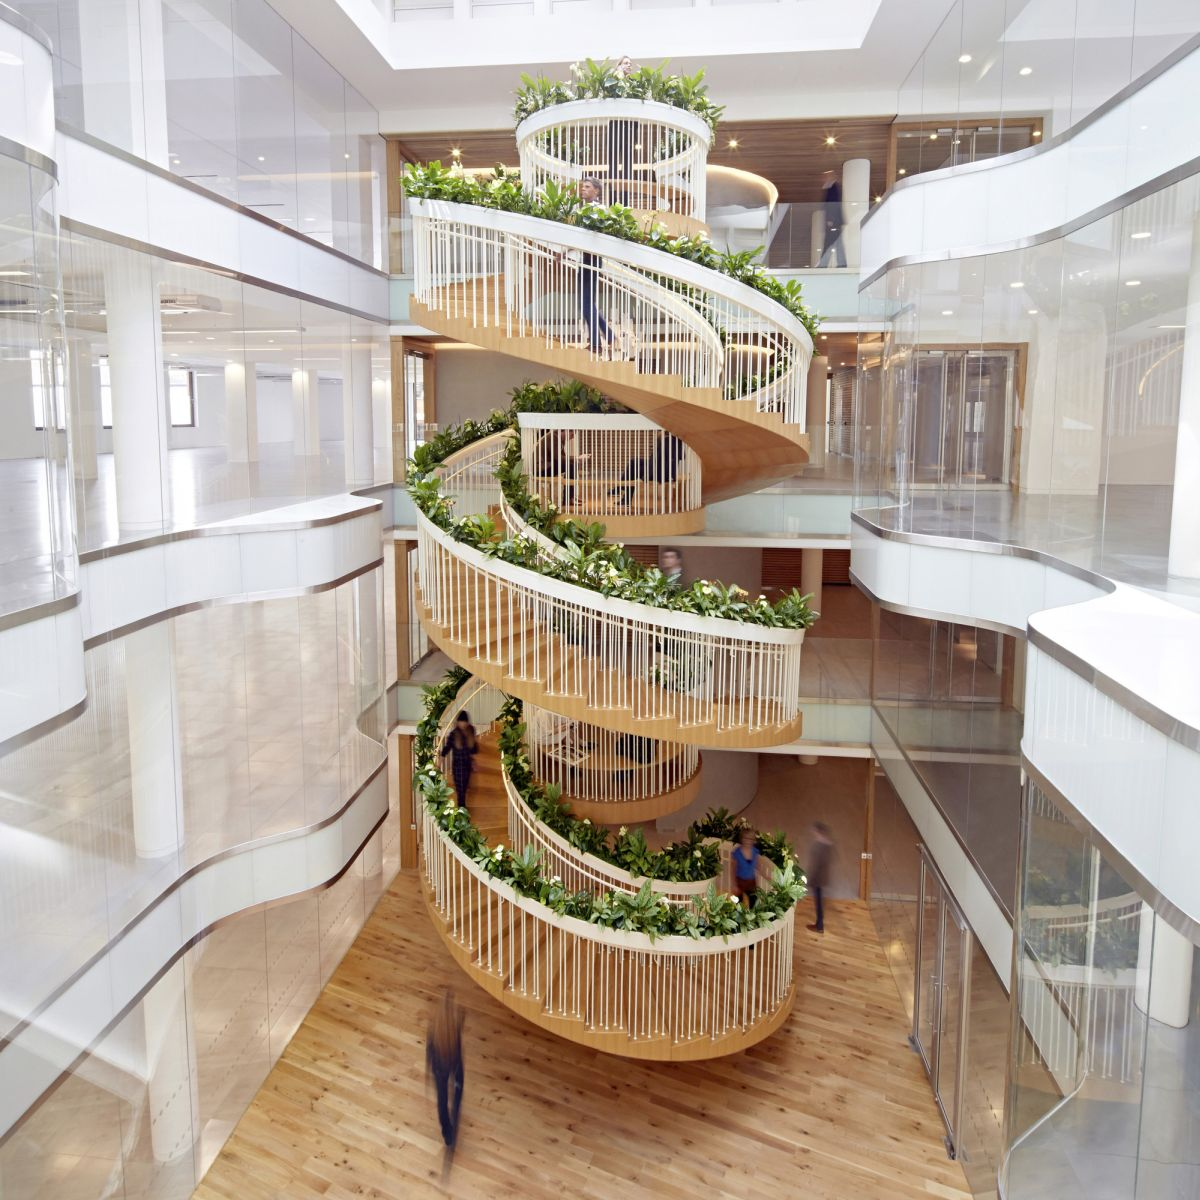 20 Of The Most Beautiful Spiral Staircase Designs Ever